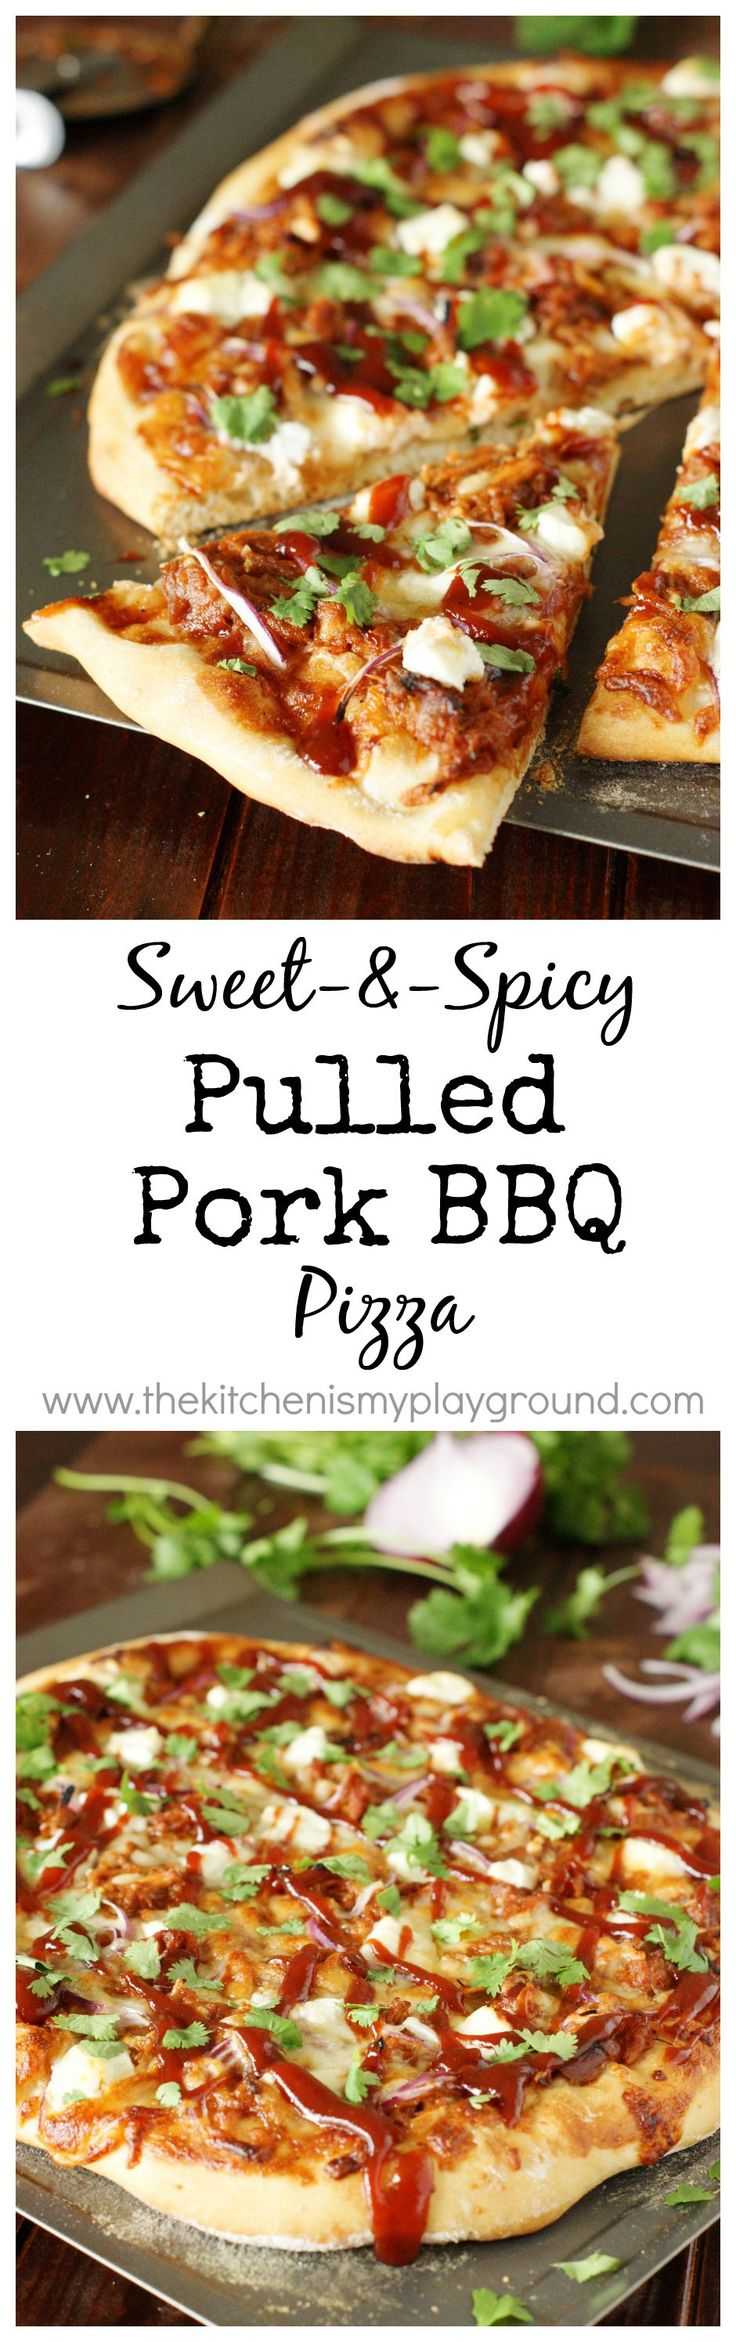 Sweet-&-Spicy Pulled Pork BBQ Pizza ~ out-of-this-world good!  ad www.thekitchenismyplayground.com: